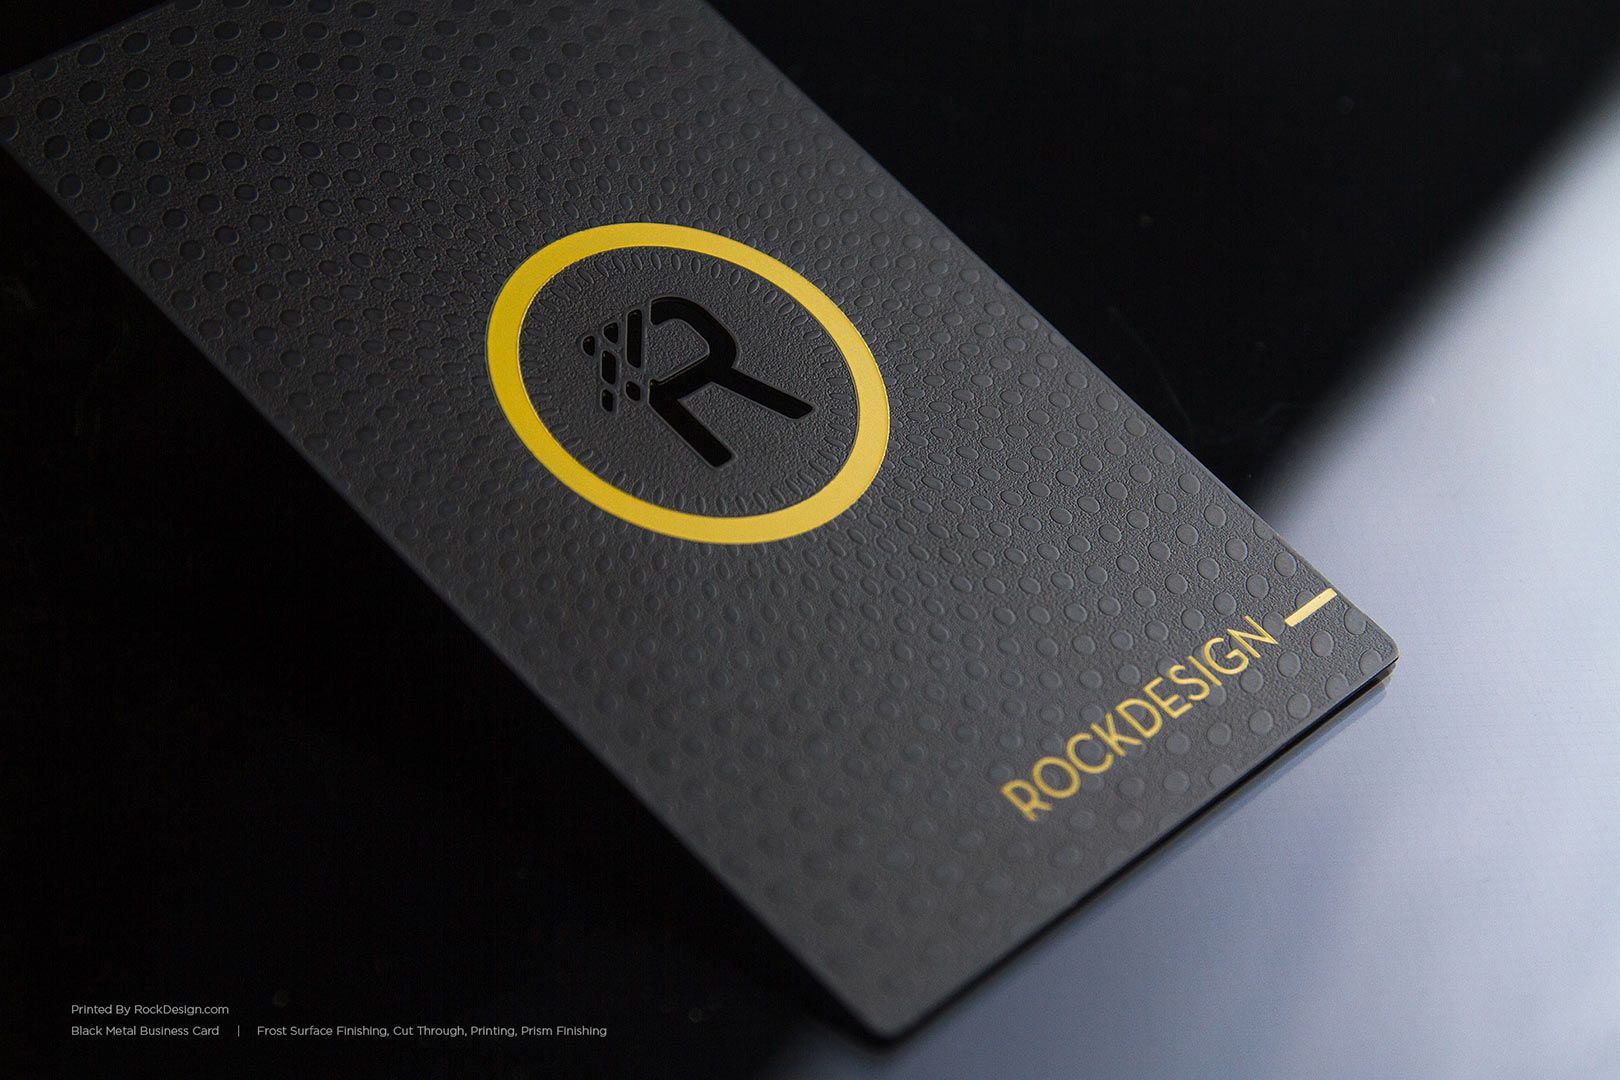 Luxury Black Metal Business Cards | RockDesign Luxury Business Card ...